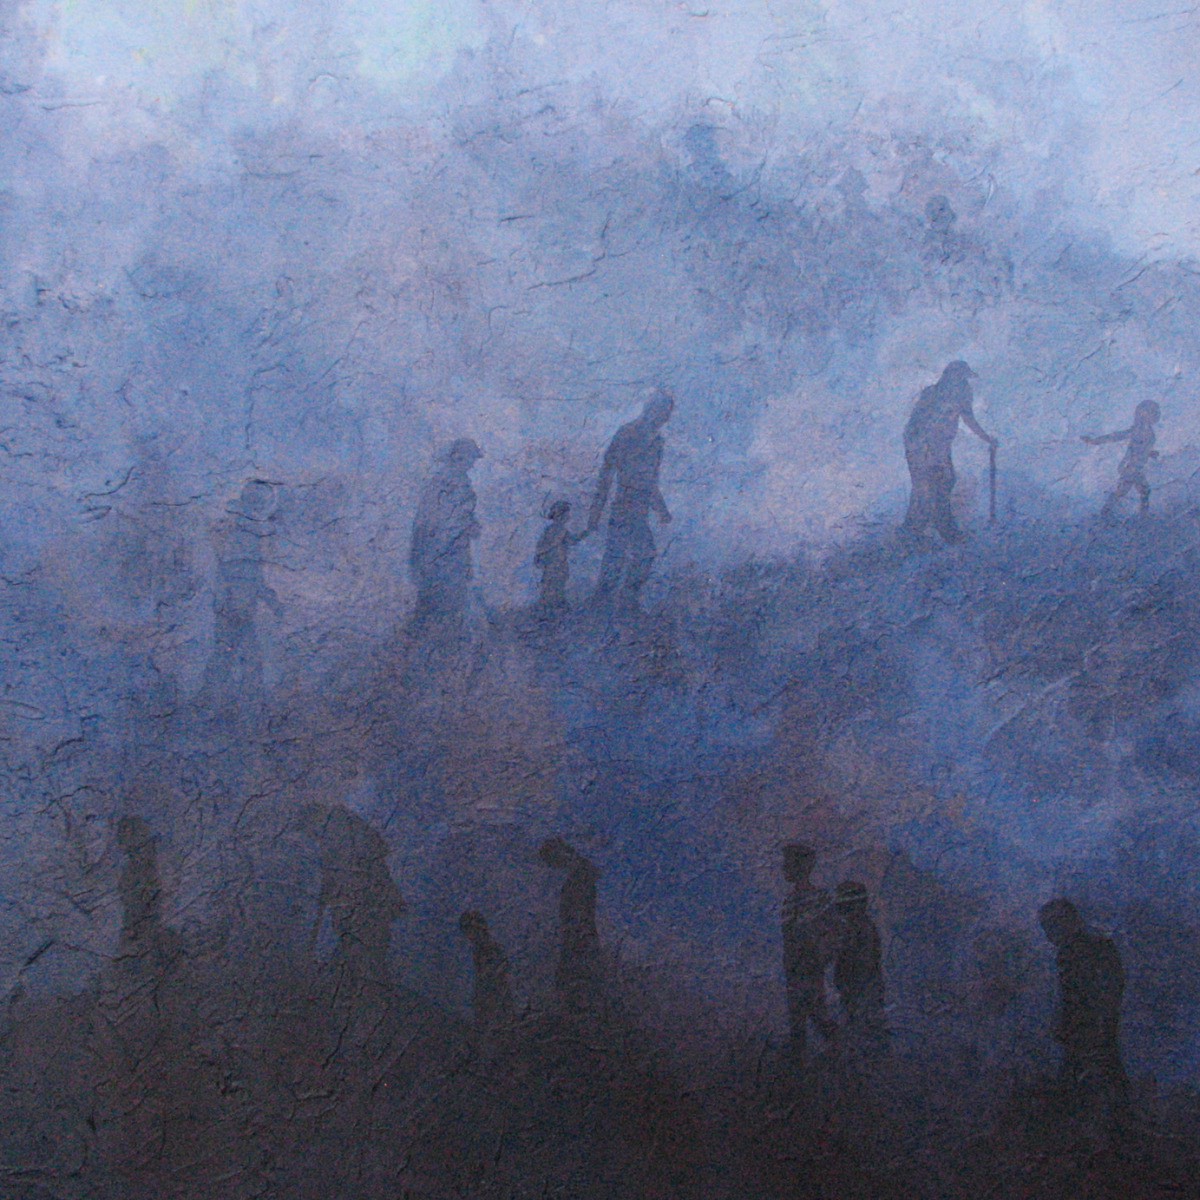 Acrylic painting representing people walking up a hill led by a child, suggesting a mass exodus. (large view)